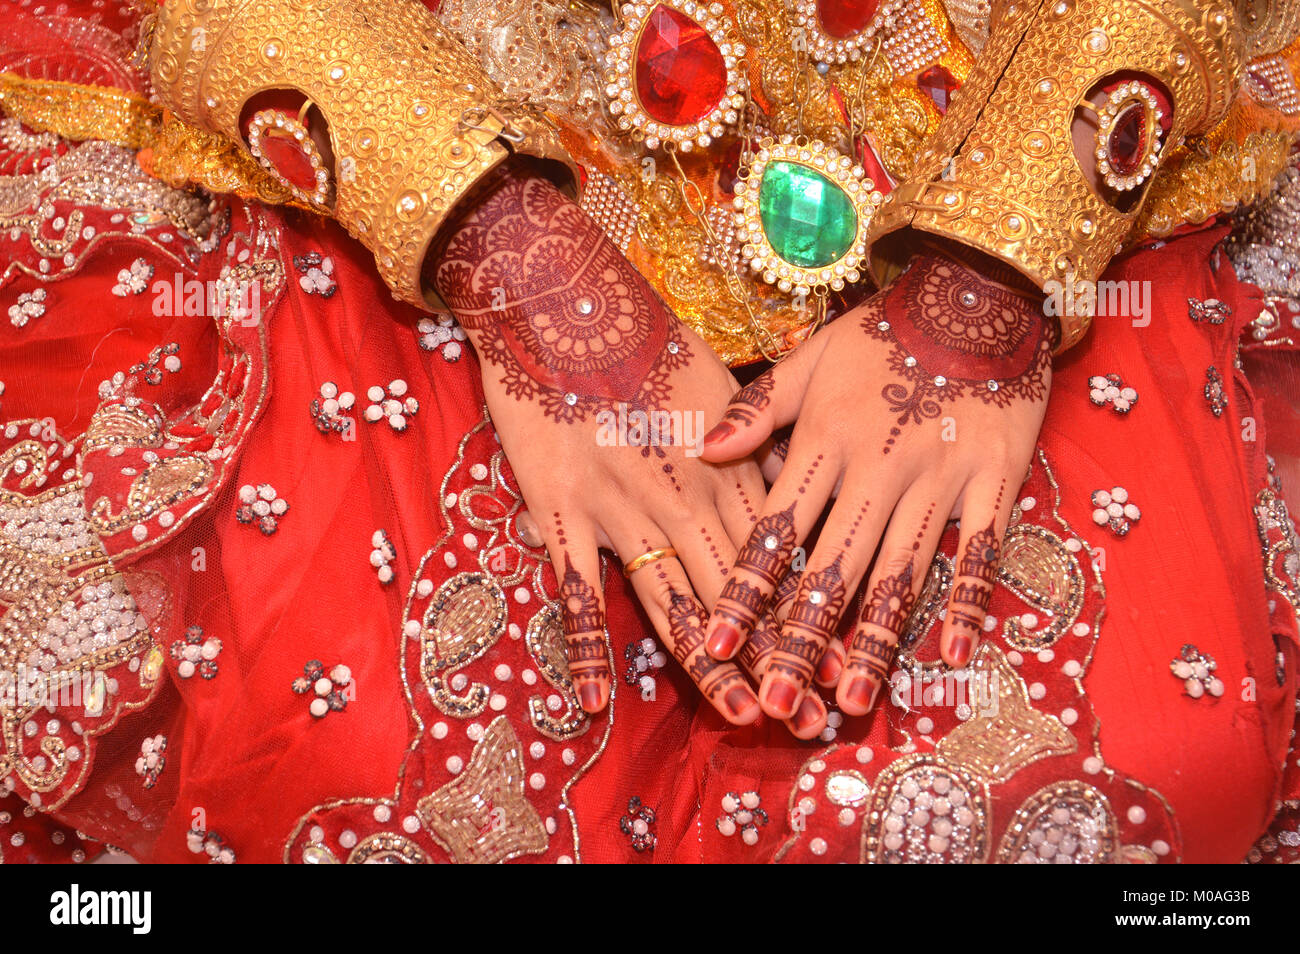 Henna On Hands Of Indonesian Wedding Bride Stock Photo 172335839